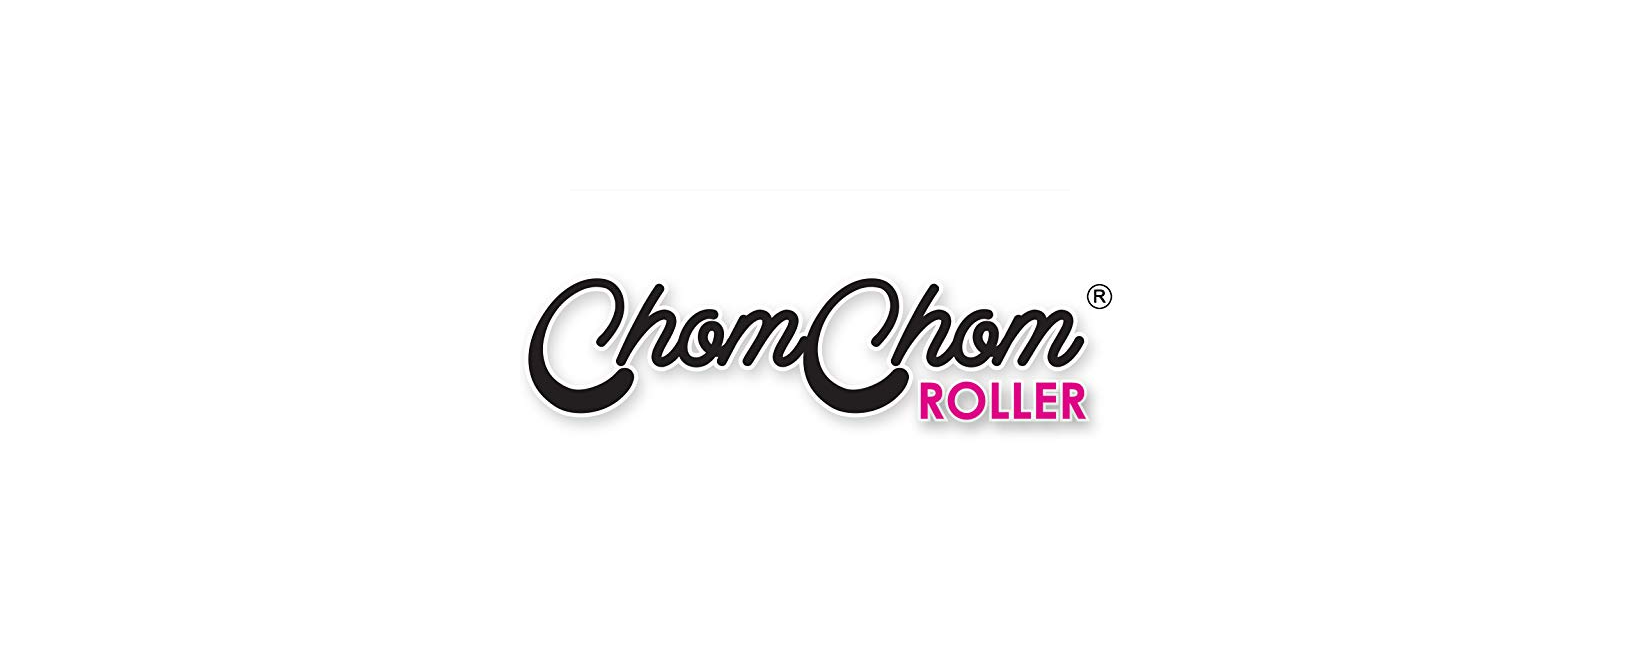 ChomChom Roller Coupon Code 2021